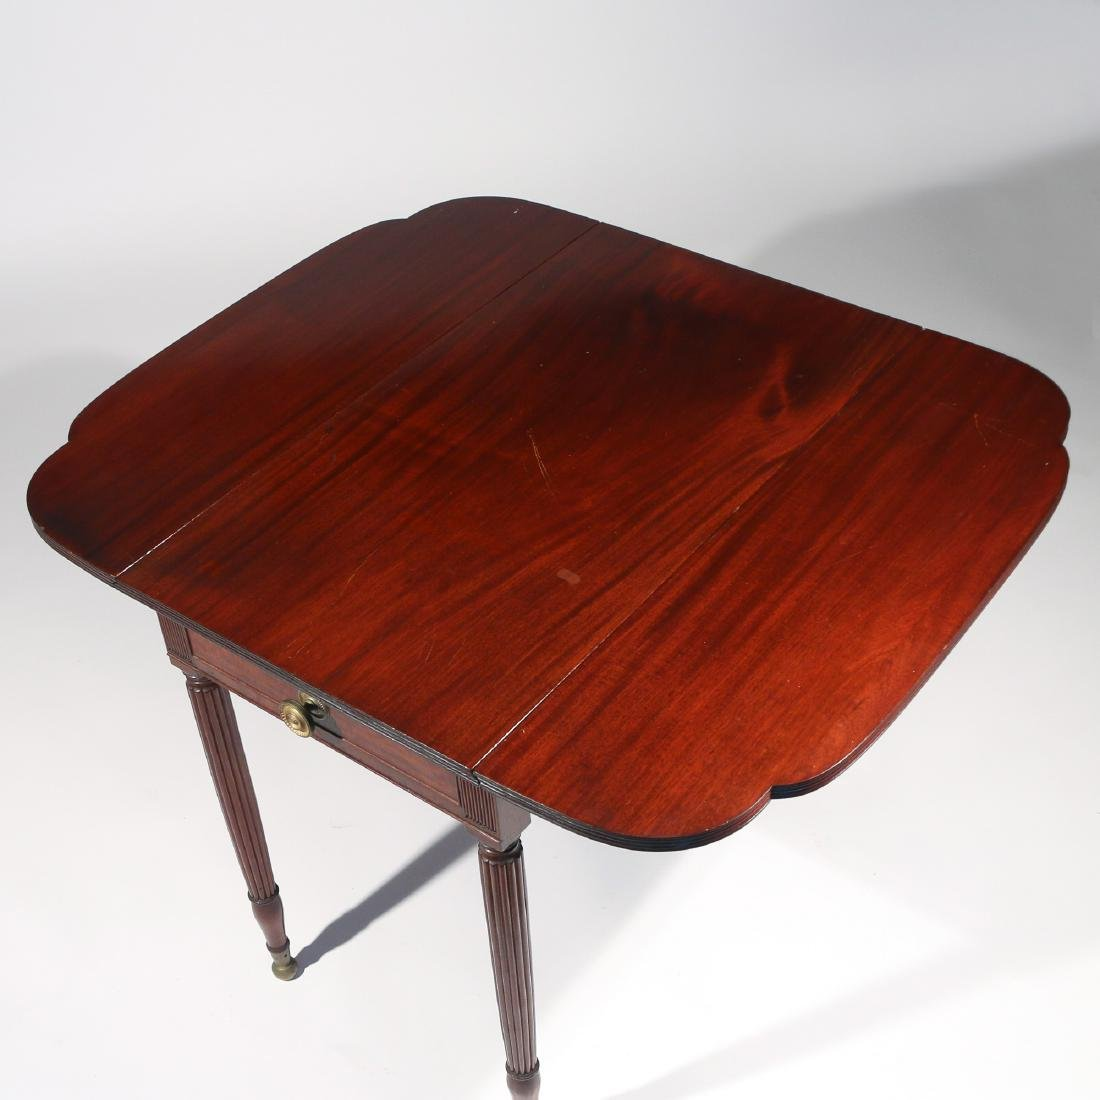 LATE FEDERAL CARVED MAHOGANY PEMBROKE TABLE - 2